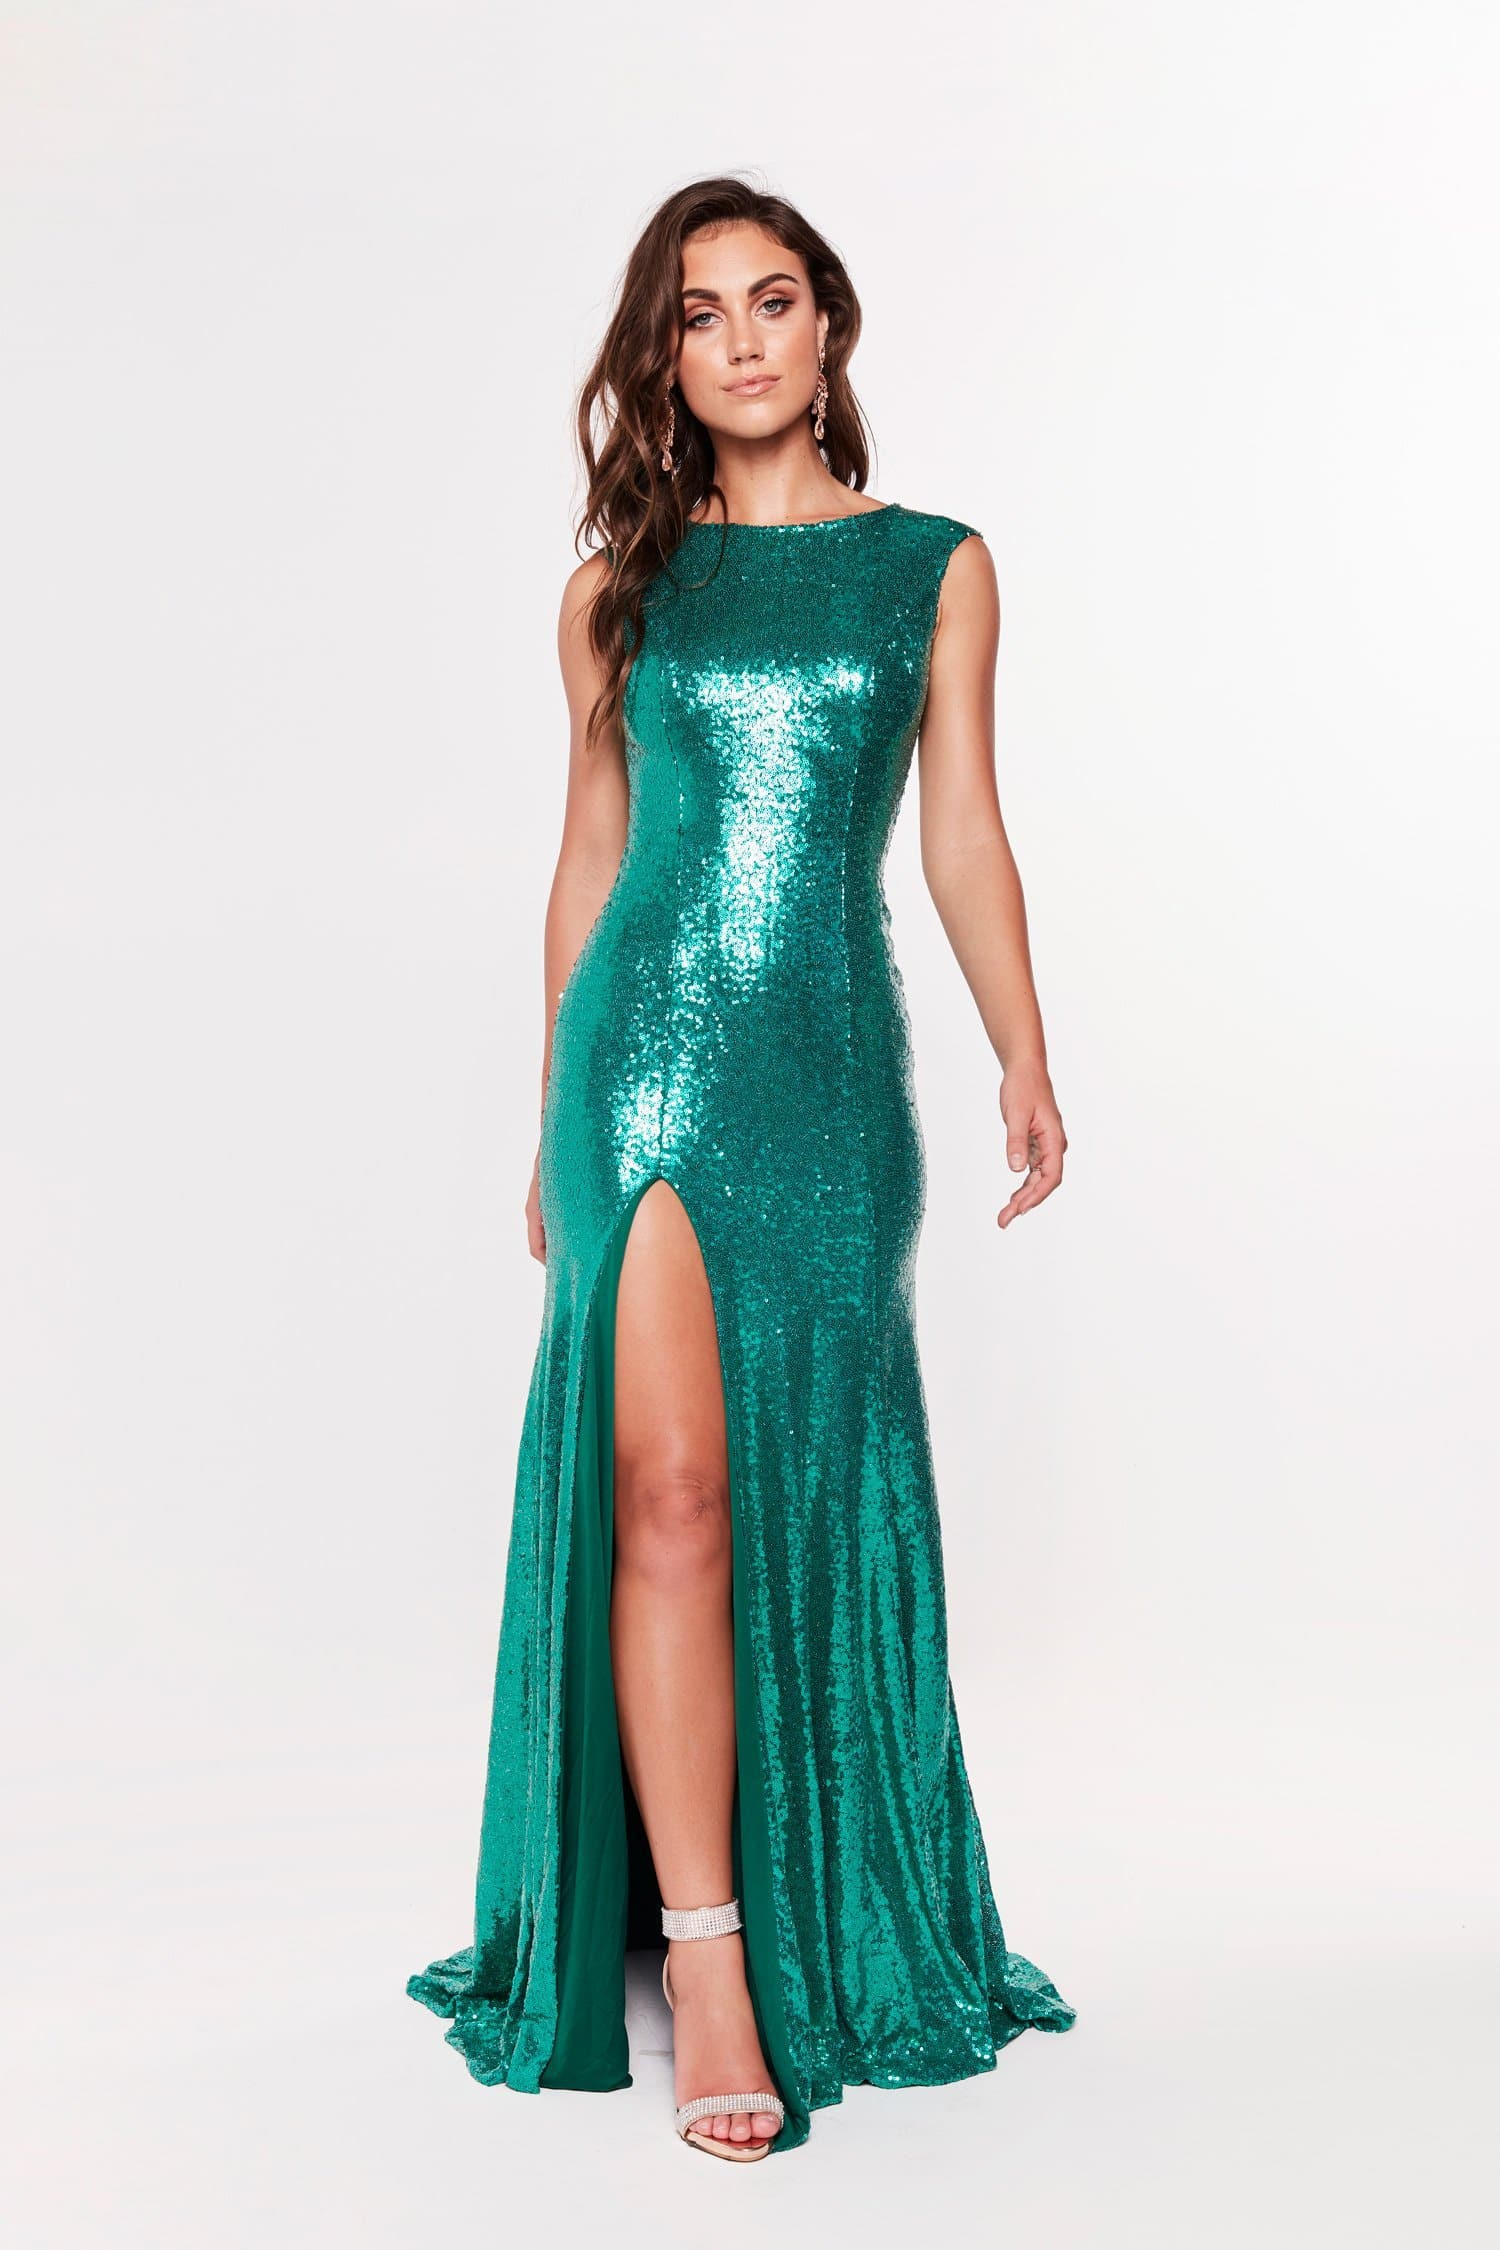 A&N Lila - High Neck Gown with Side Slit in Emerald